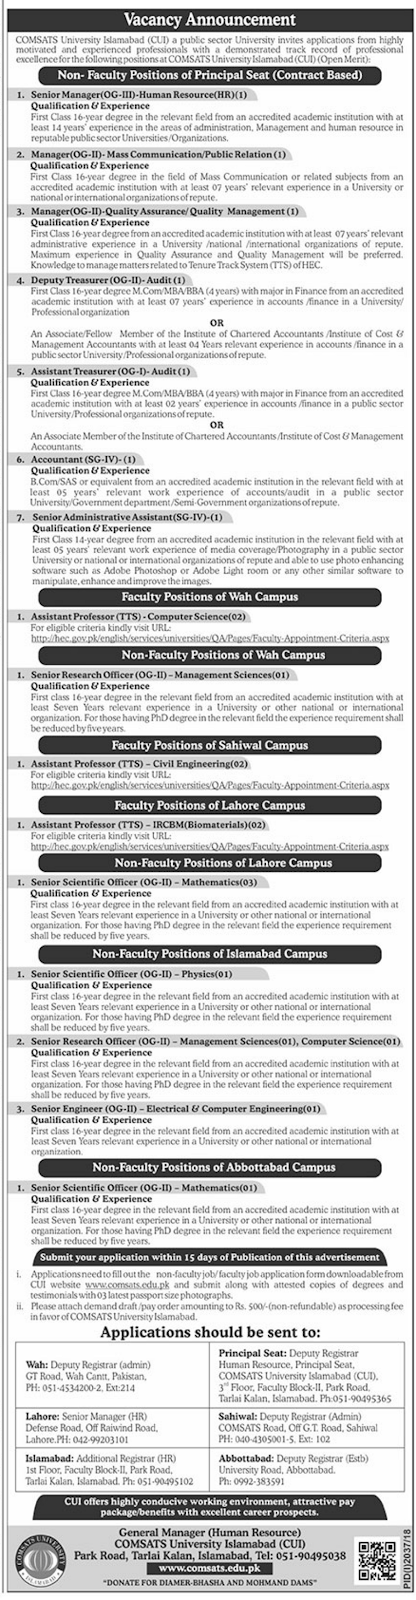 #Jobs - #Career_Opportunities #Jobs in Many jobs at COMSATS University